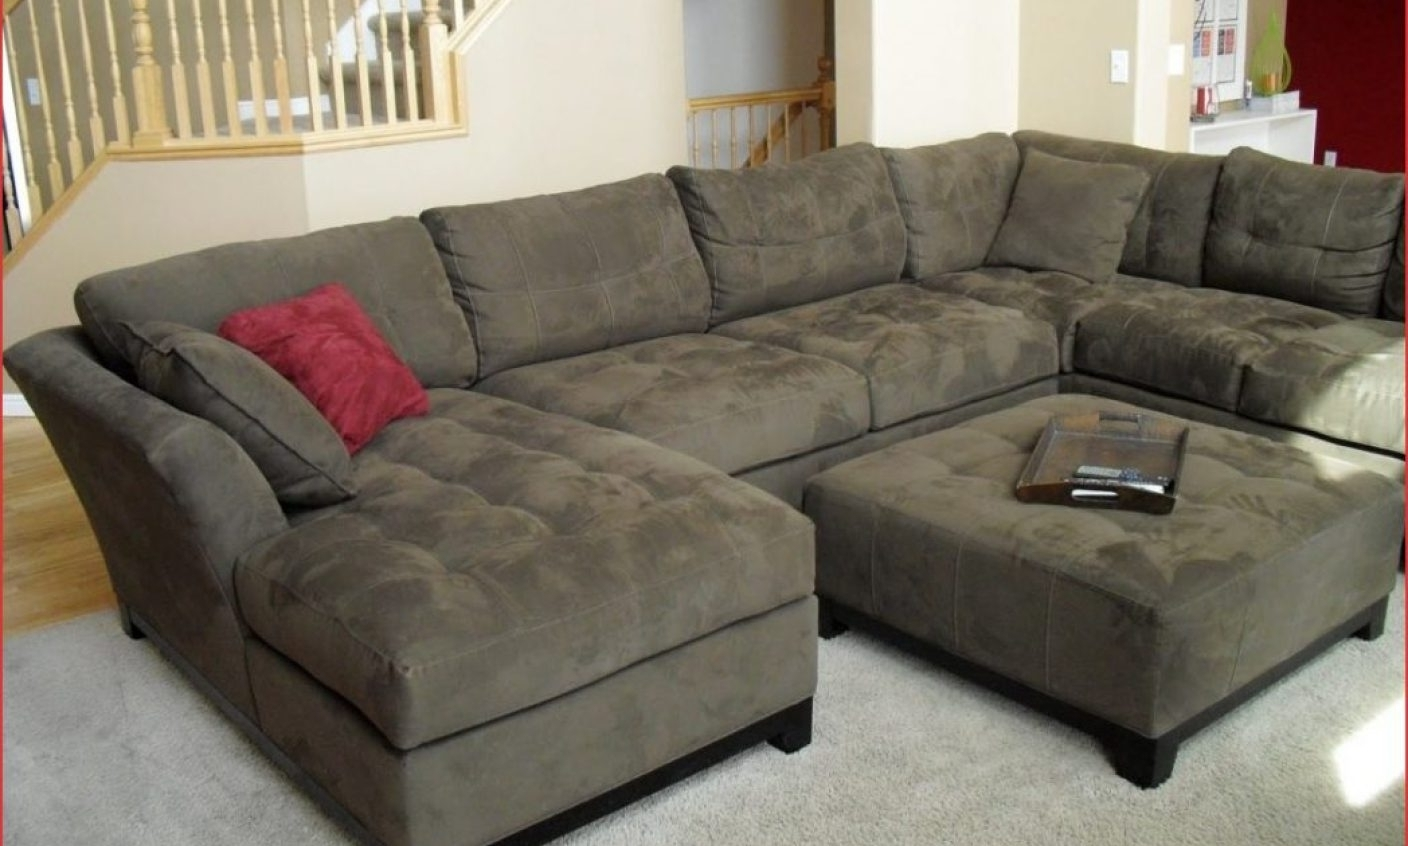 Brilliant Sectional Sofas Orange County – Mediasupload With Most Recent Orange County Sofas (View 9 of 15)